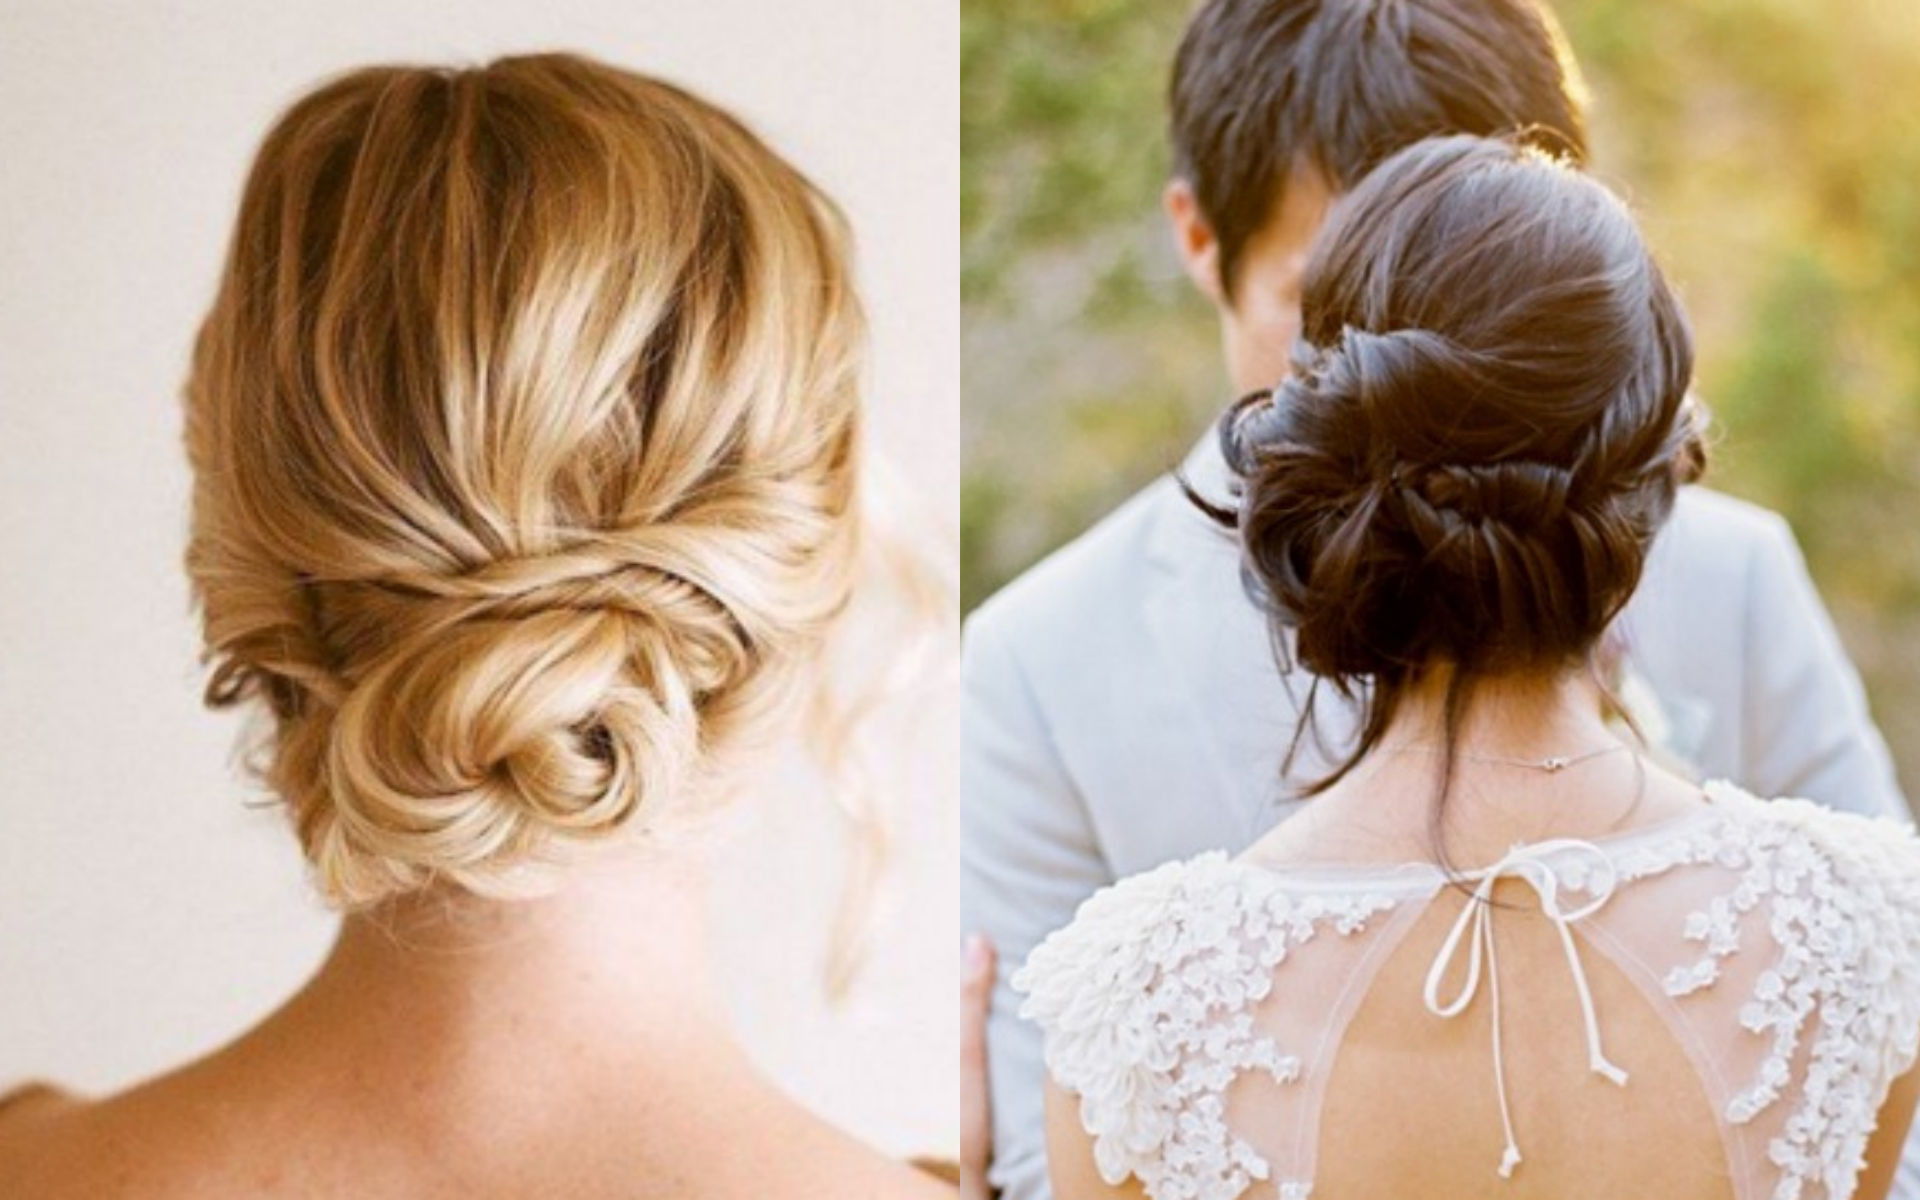 Best ideas about Wedding Bun Hairstyles . Save or Pin Wedding Hair Trends 2016 Now.